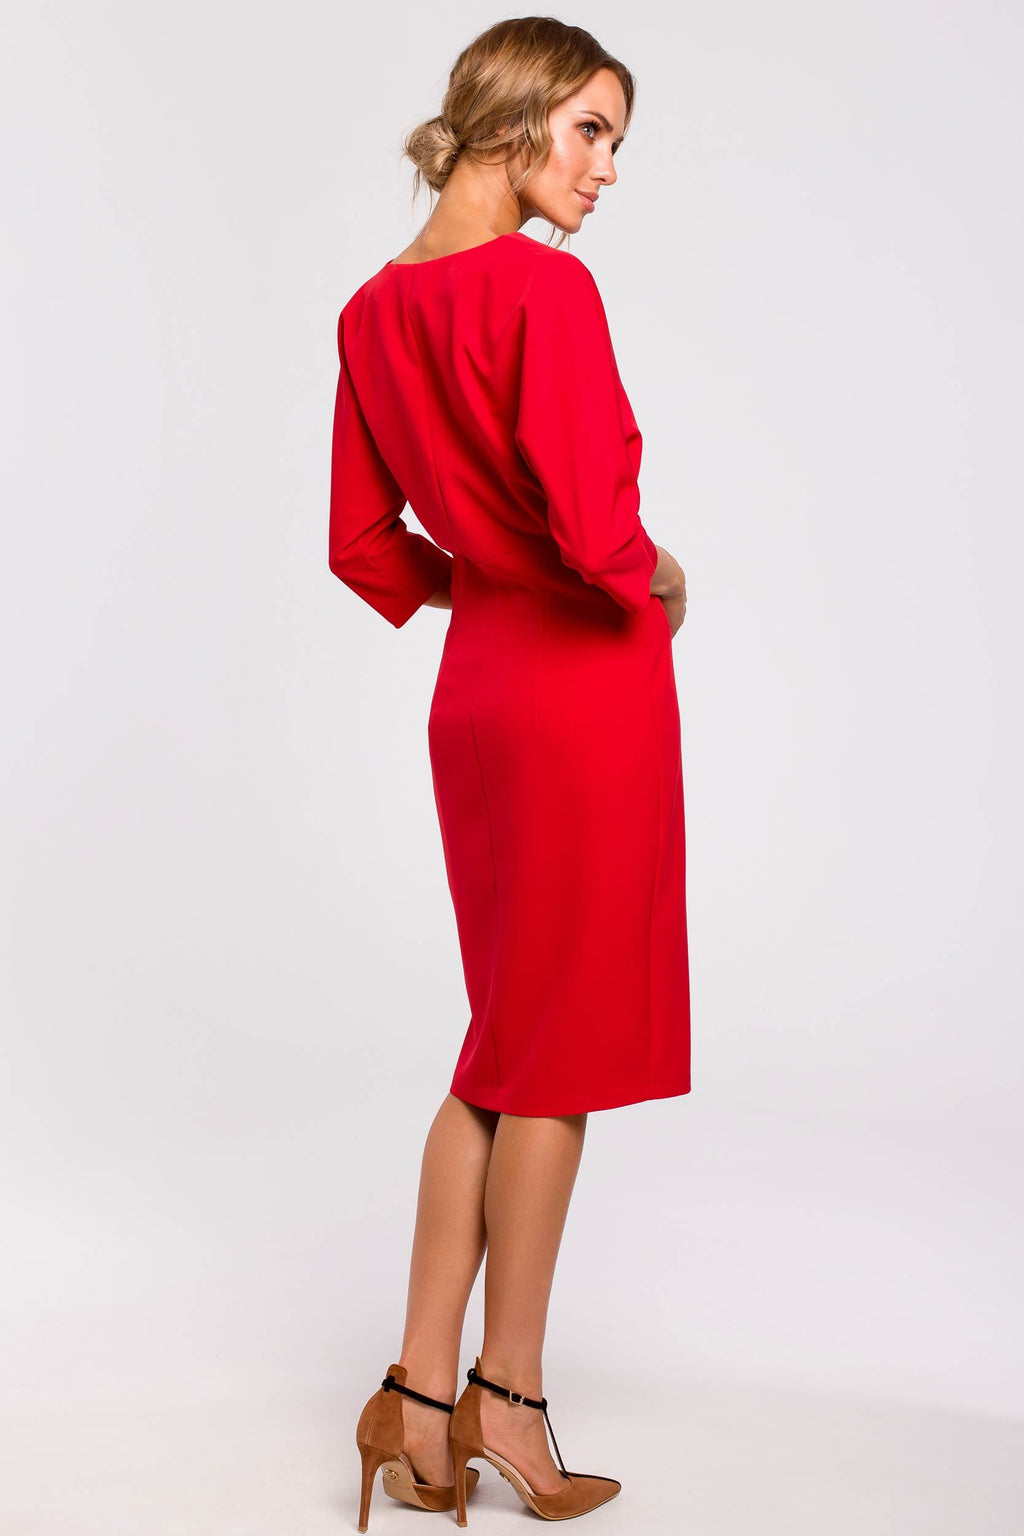 Red Batwing Top Pencil Dress - So Chic Boutique